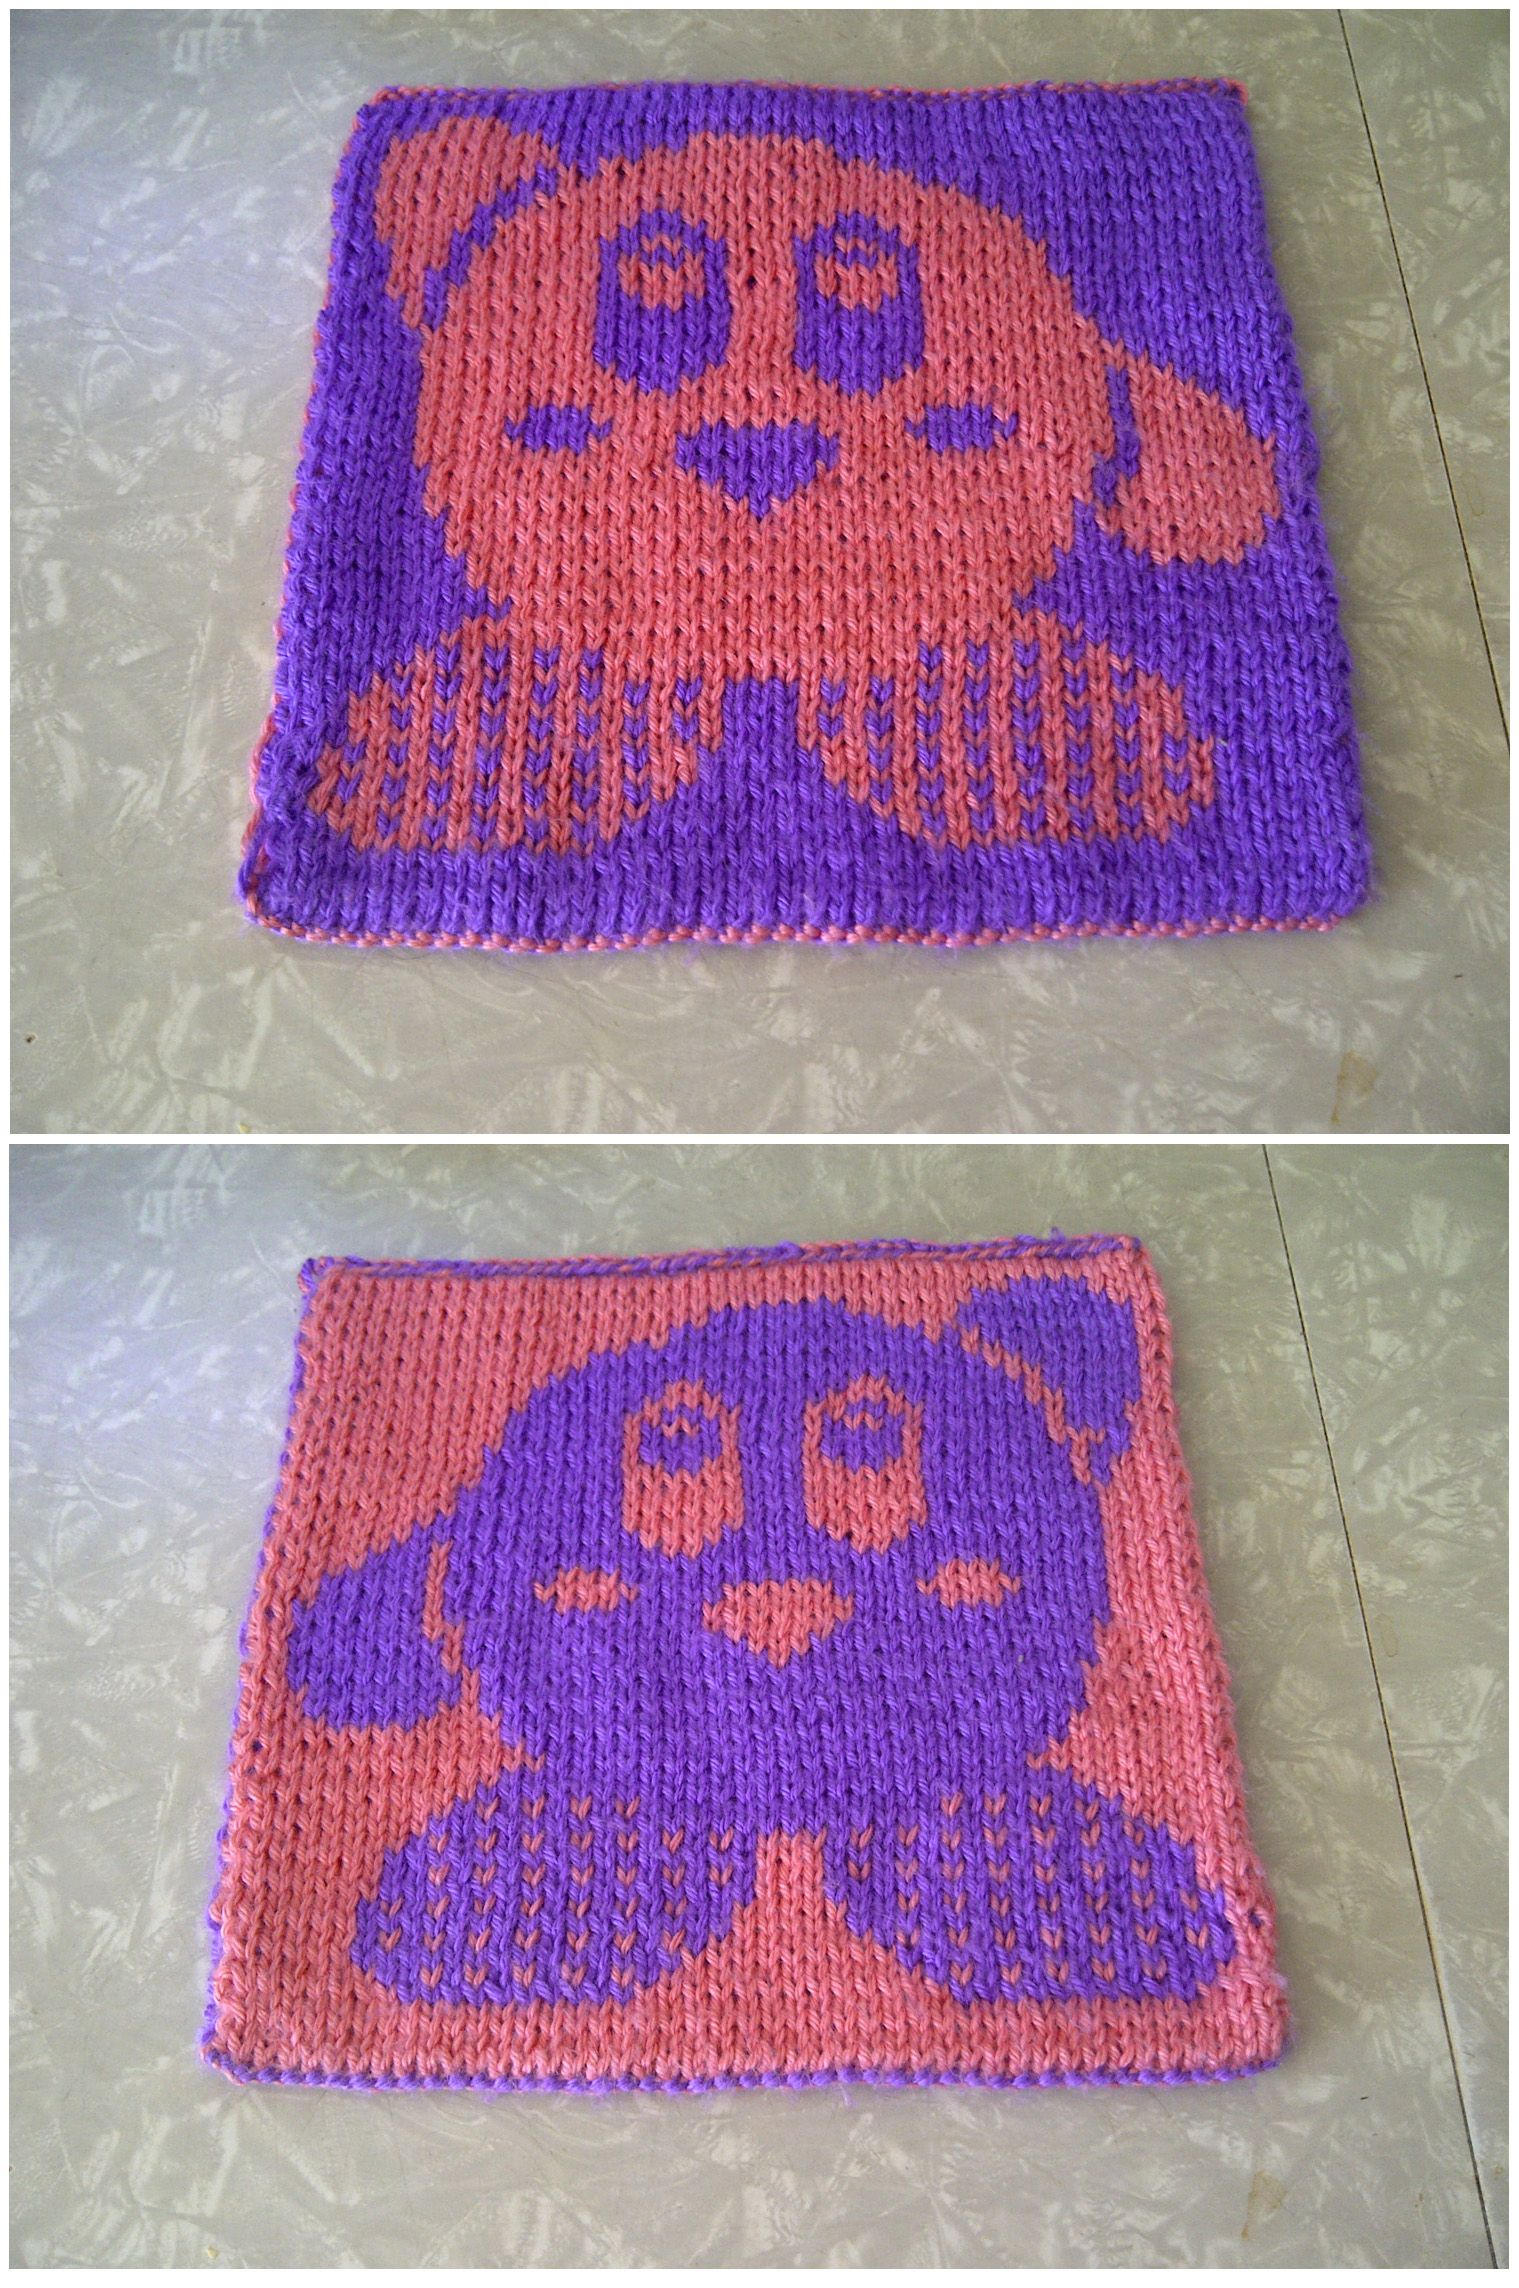 2016 GAL Kirby square — I started the 2016 lattesandllamas Geek-A-Long blanket. The theme this year is video games. http://lattesandllamas.com/geek-a-week-faq/geek-a-long-squares/